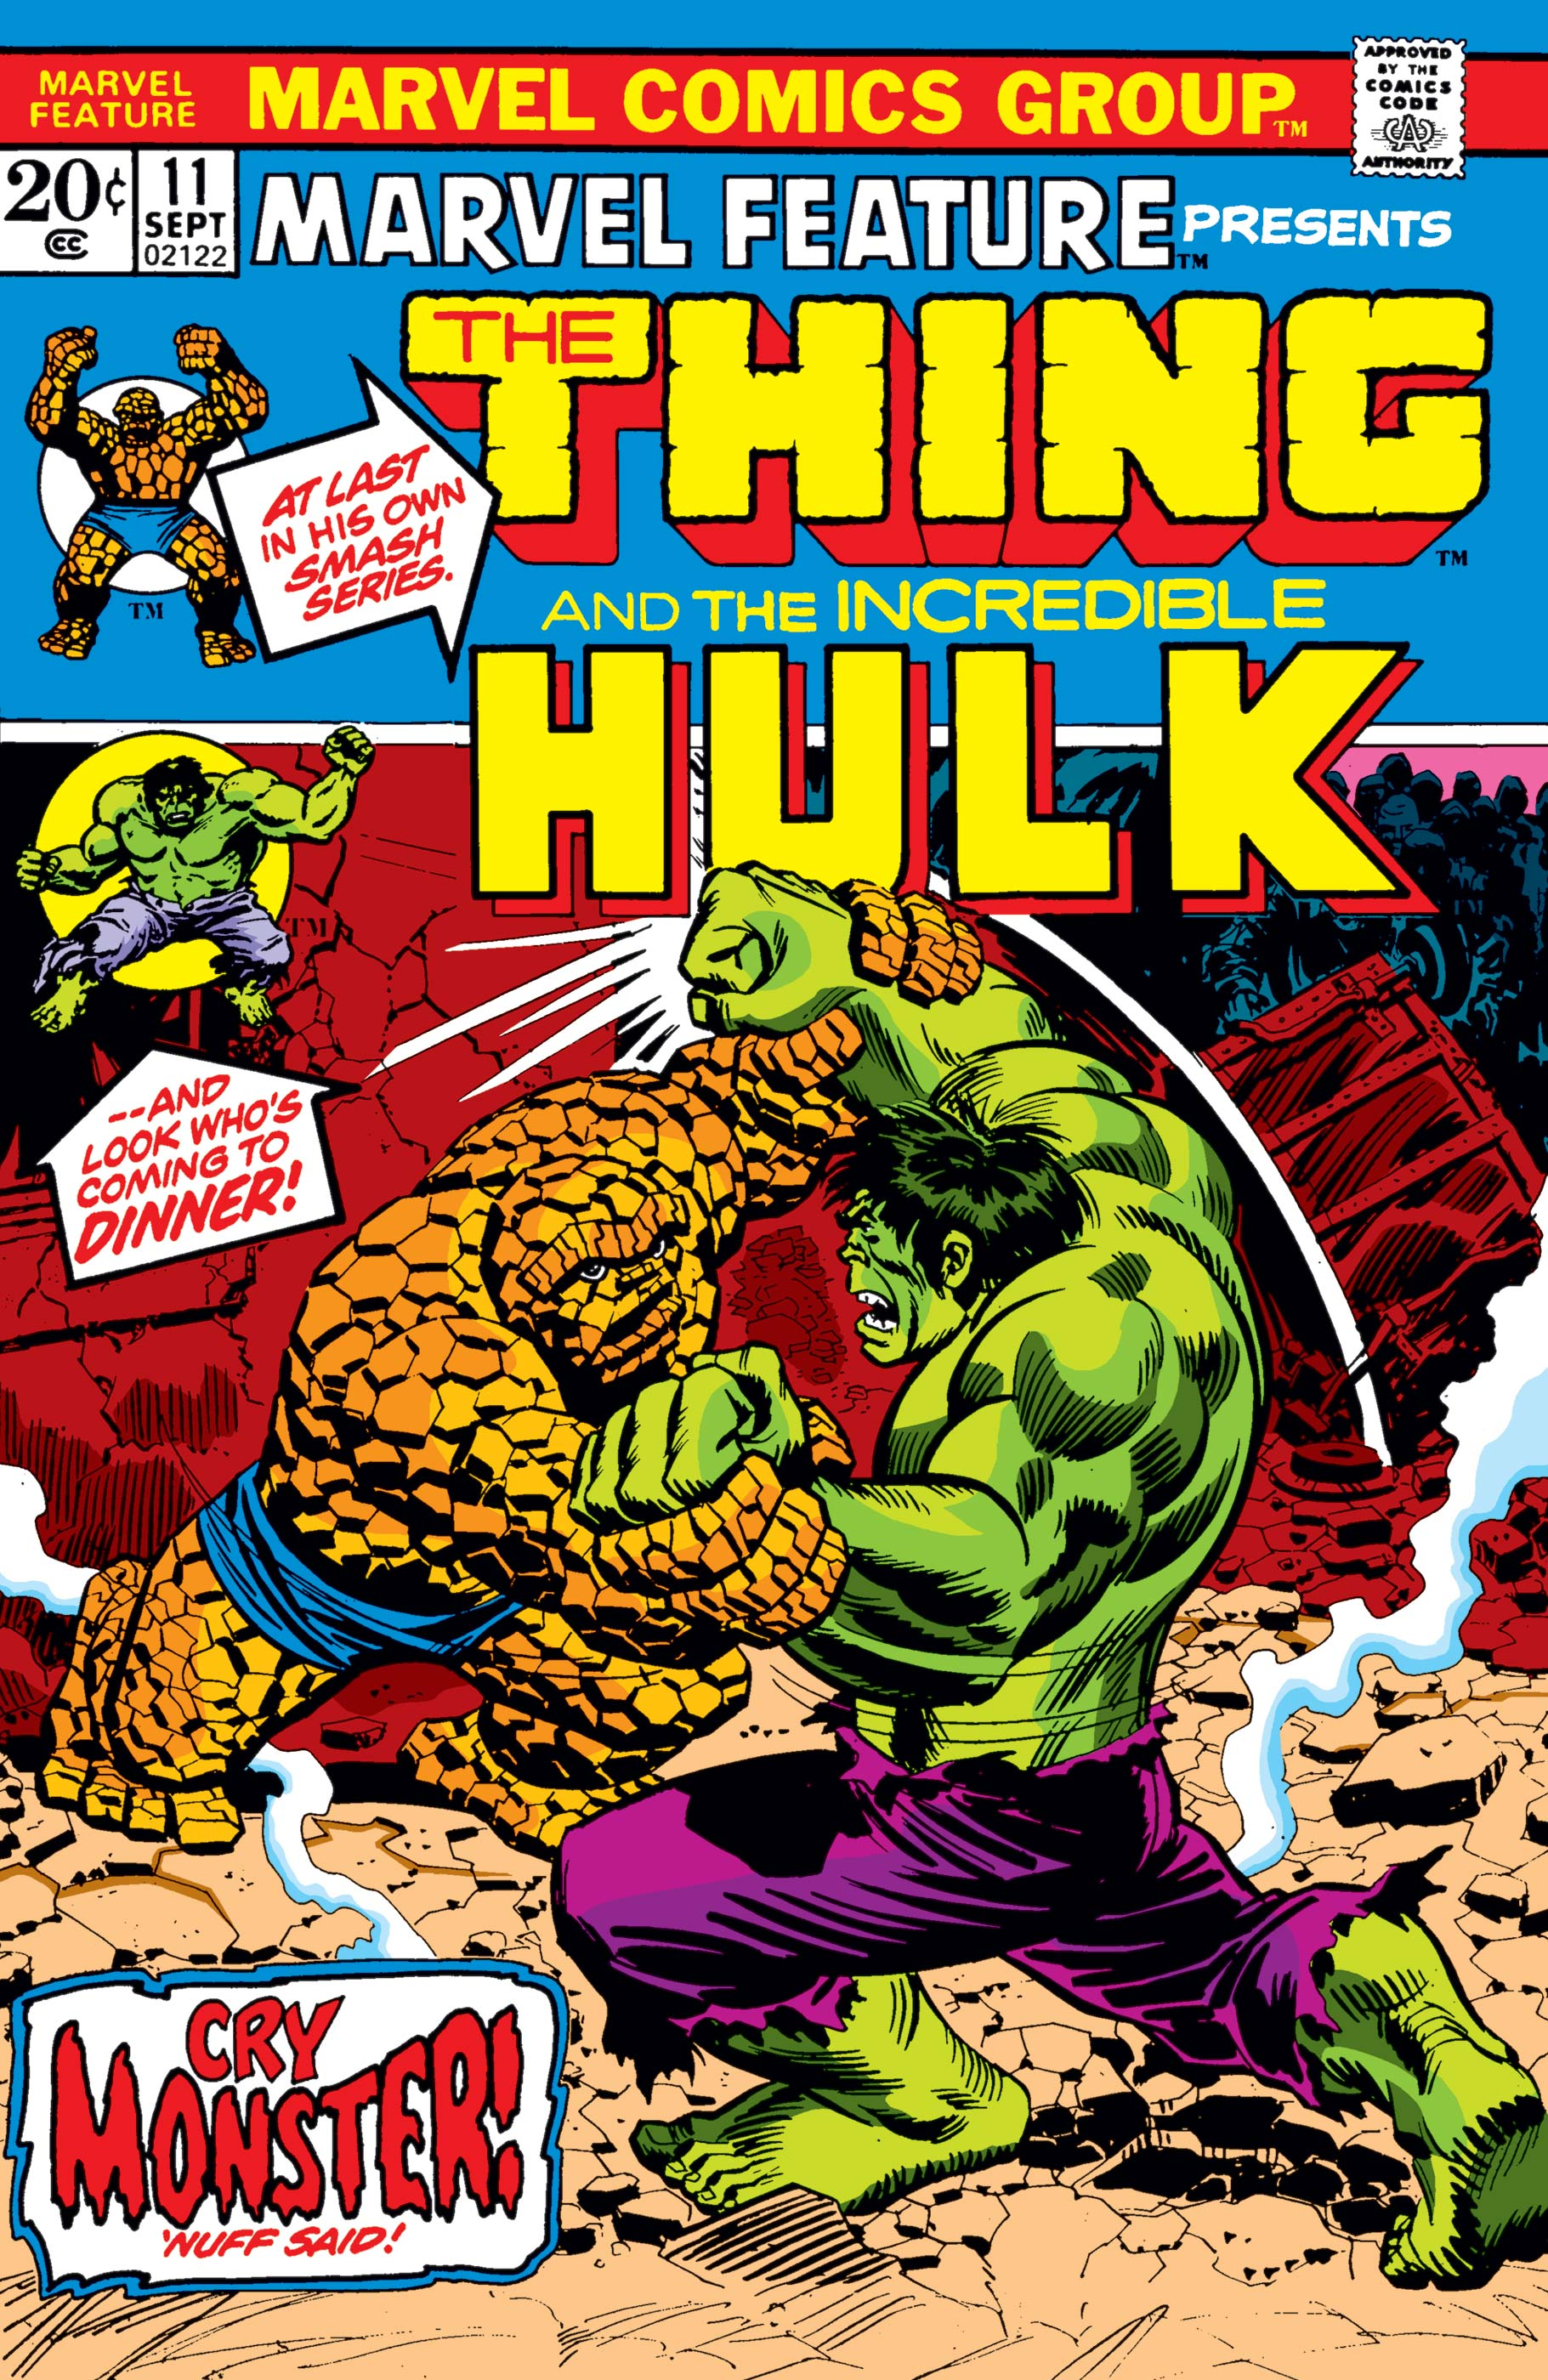 Marvel Feature (1971) #11